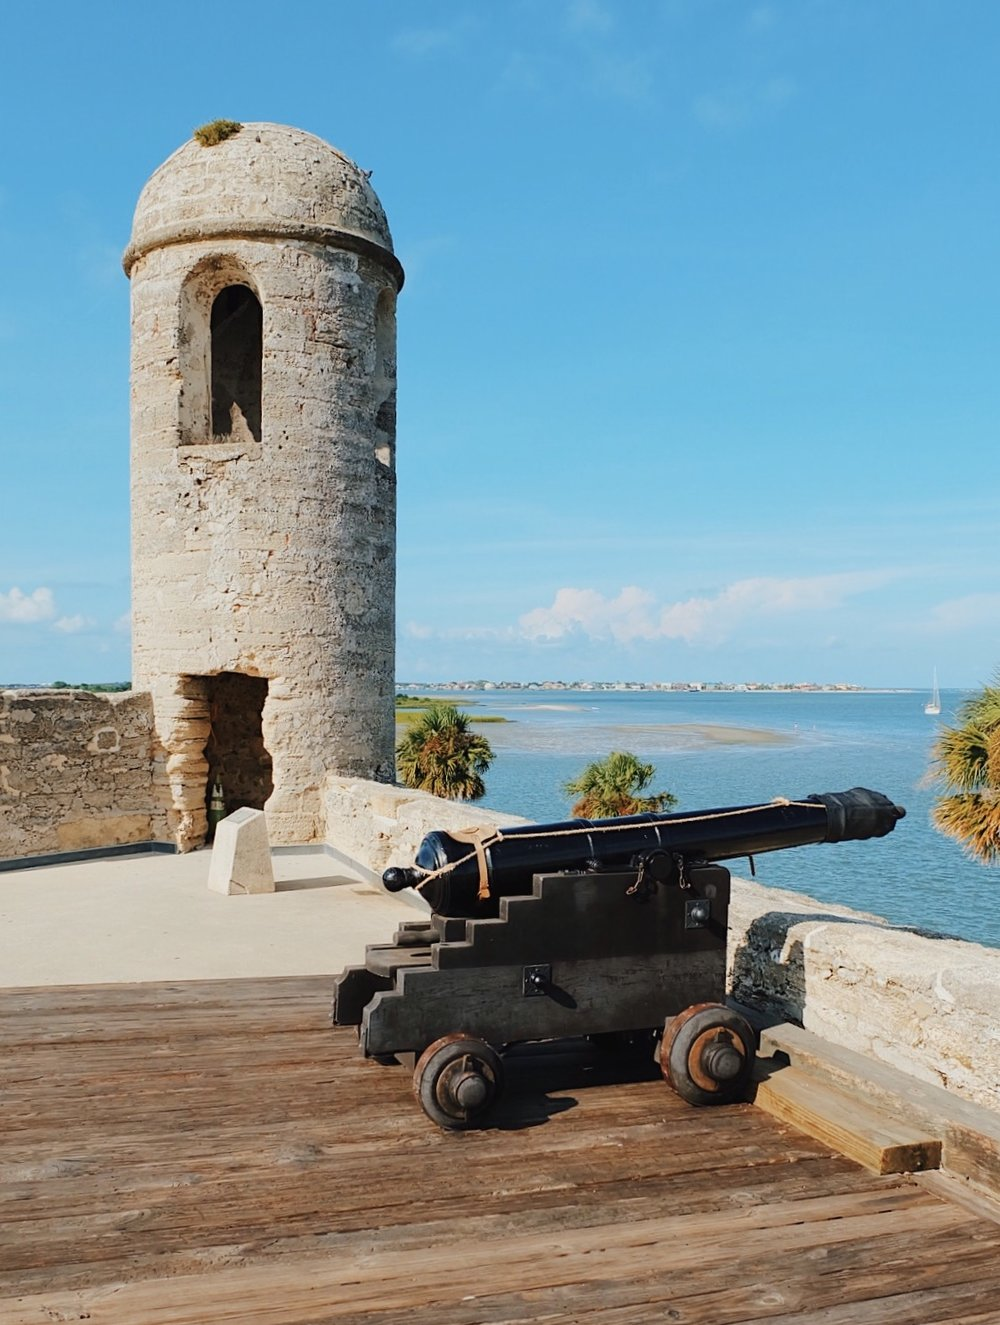 Castillo de San Marcos- Watch Tower - Fuji X-A2 - Color Grade VSCO by Bryan Garces